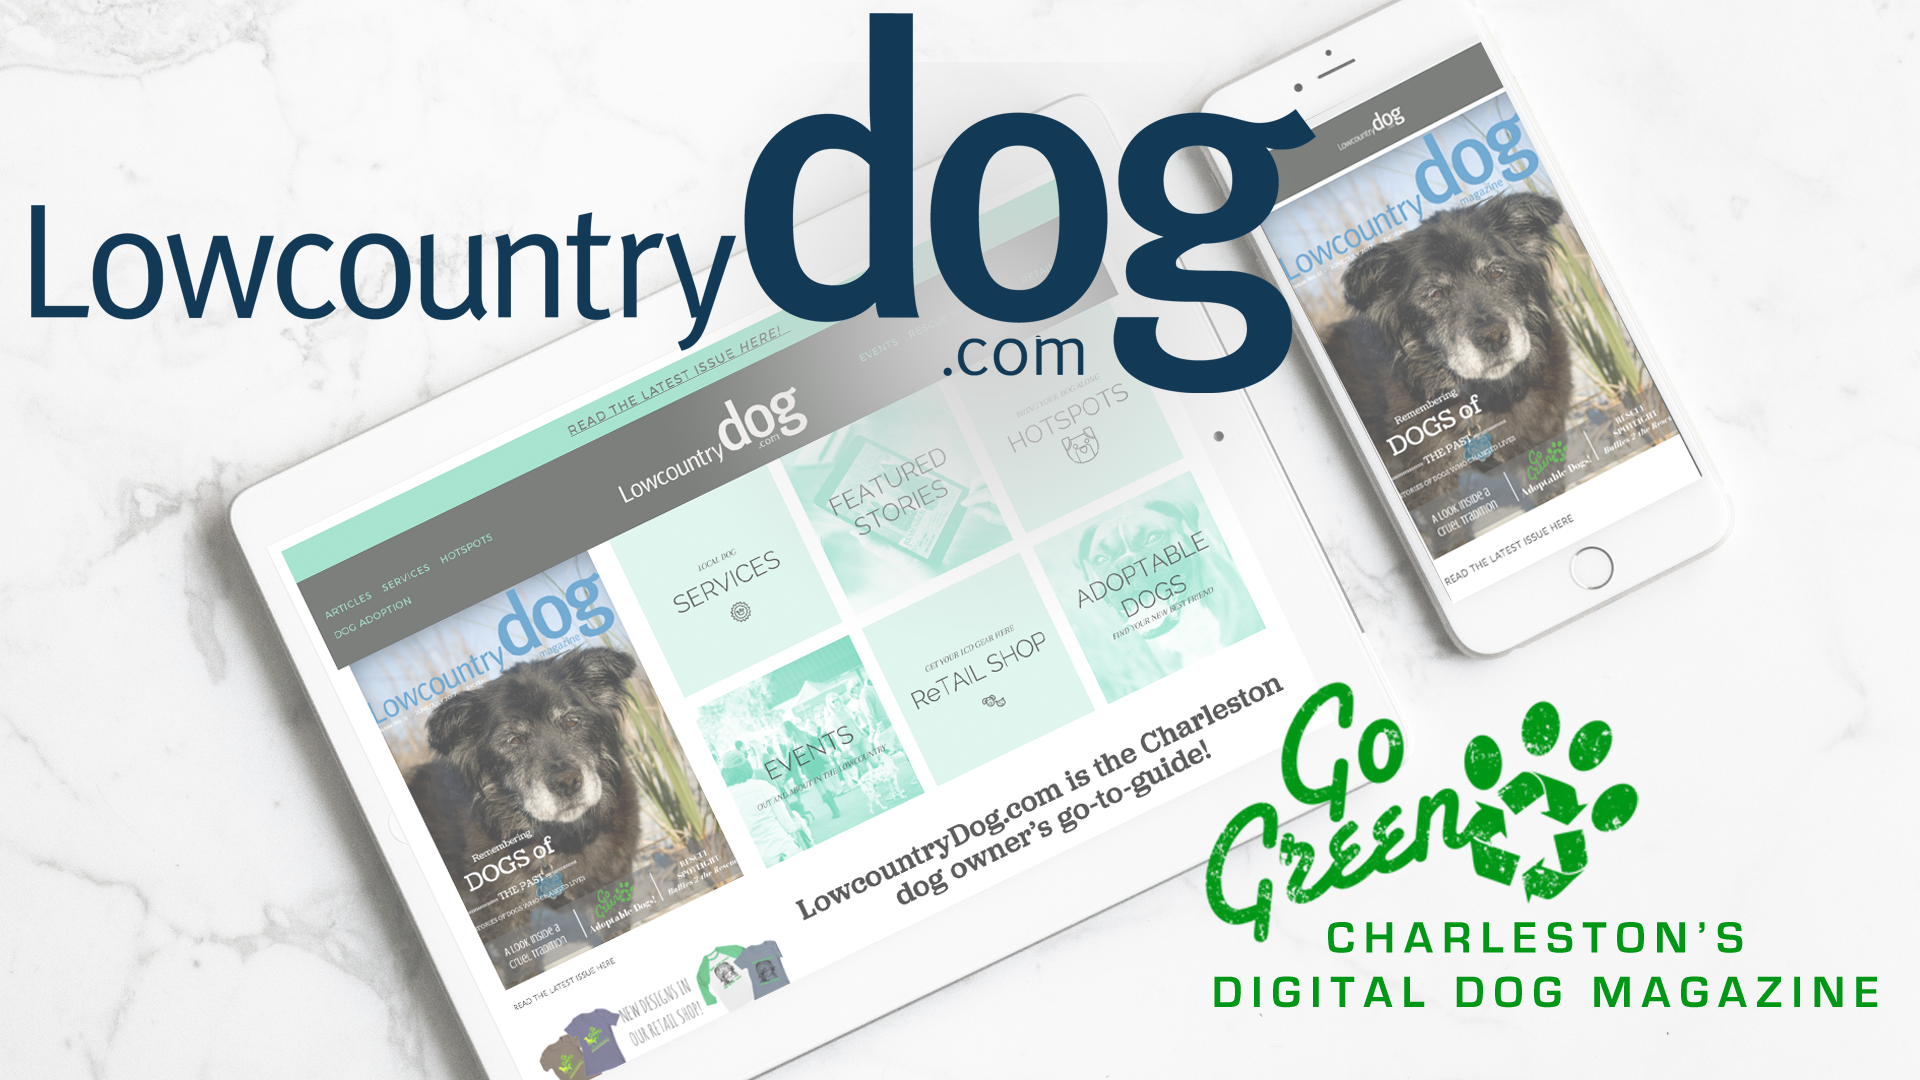 Check out more dog events and read the latest issue